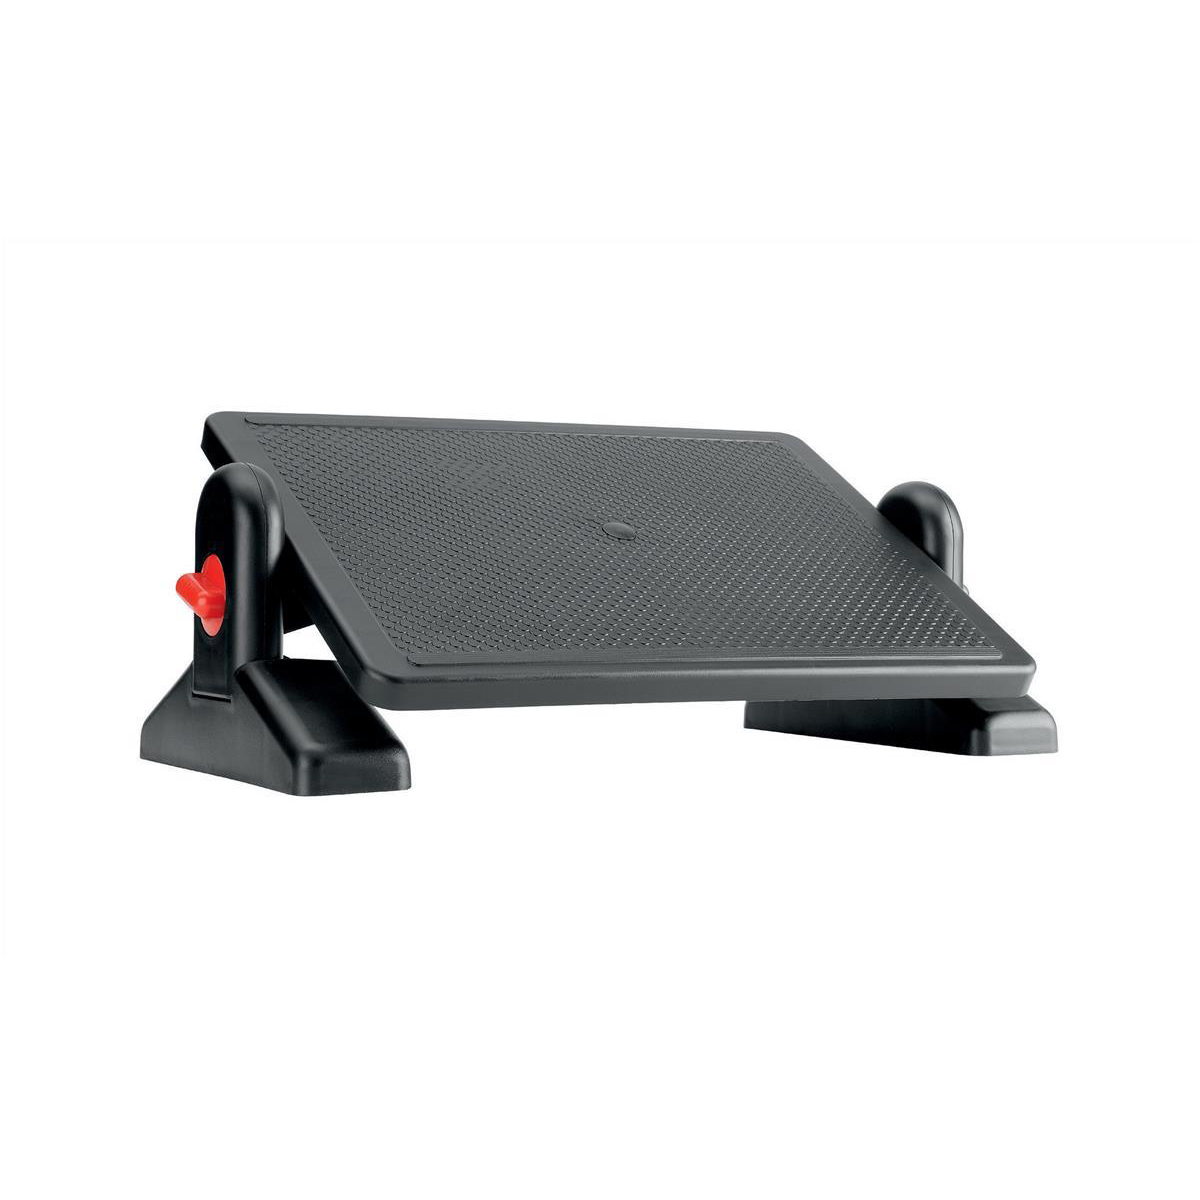 Footrests Office Footrest ABS Plastic Easy Tilt H115-145mm Platform 415x305mm Ref FR002